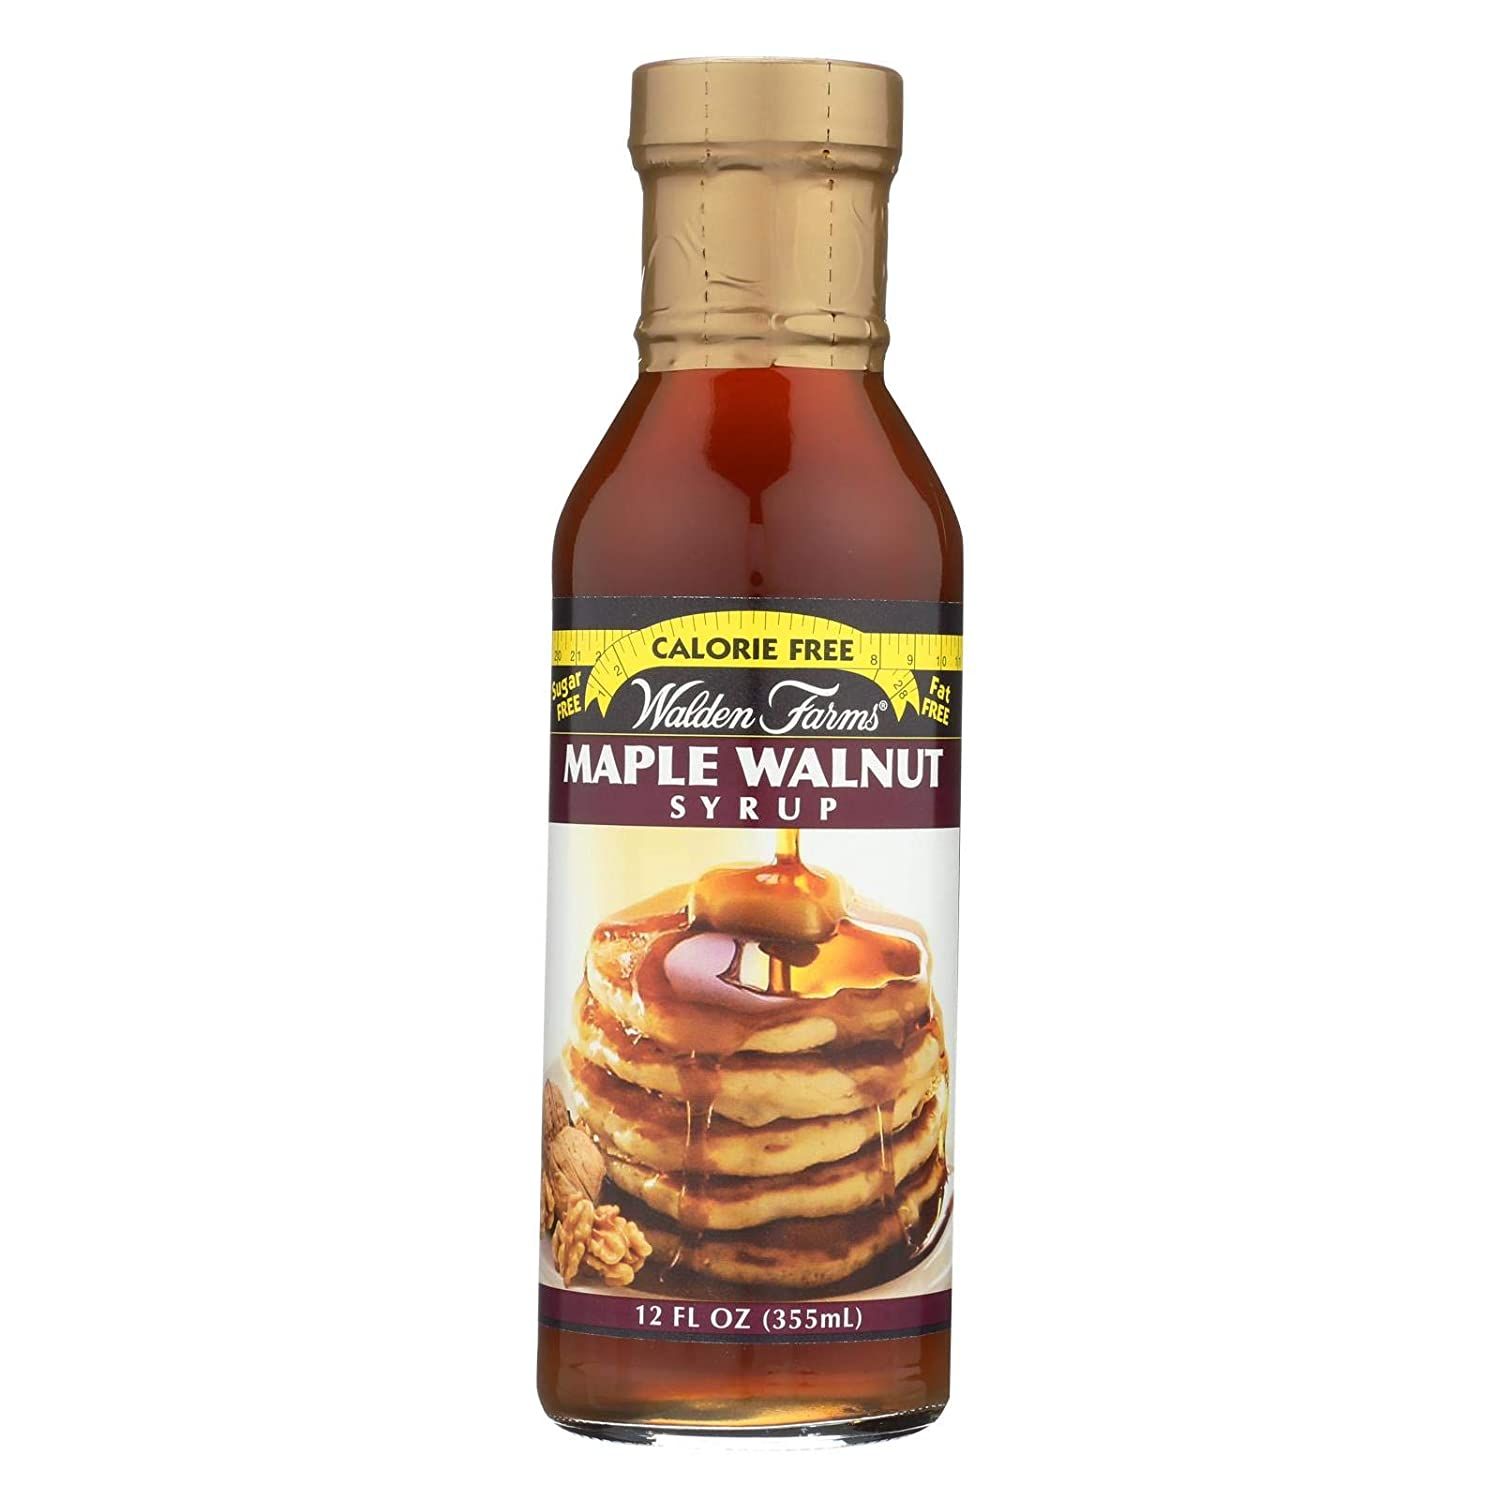 WALDEN FARMS, SYRUP, MAPLE WALNUT - Pack of 6